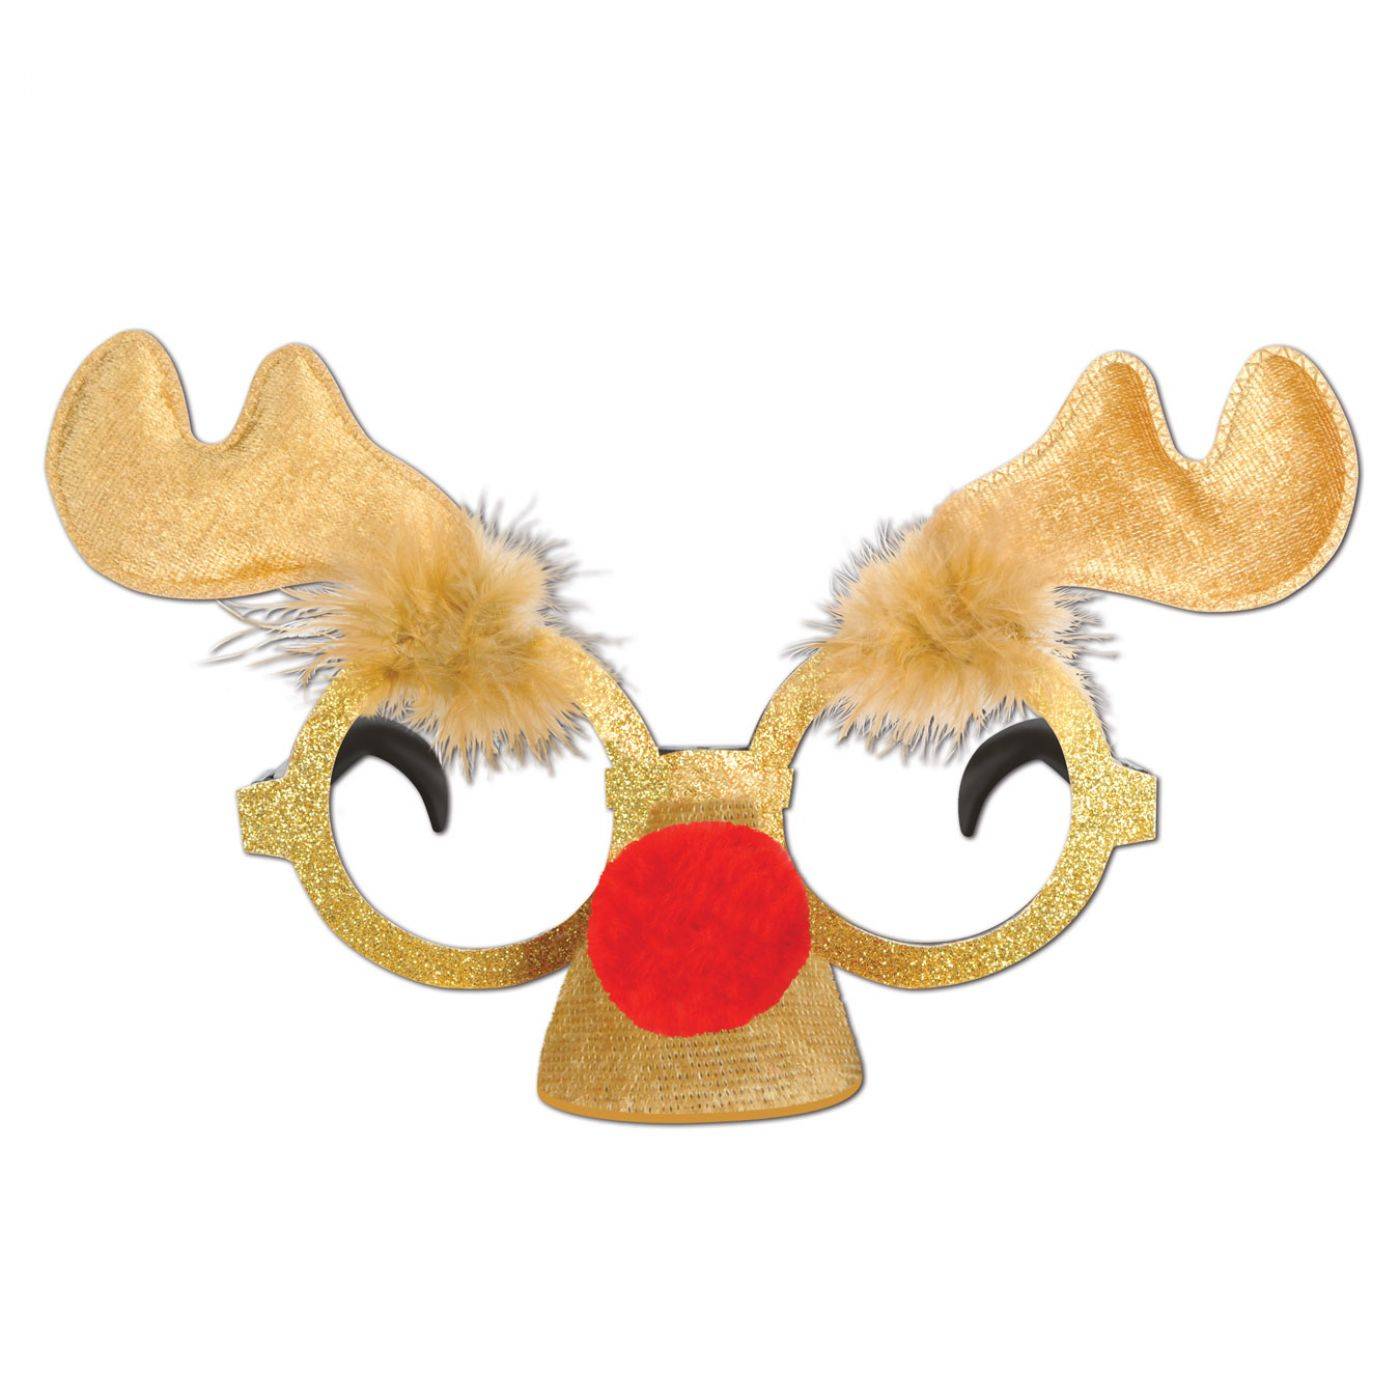 Glittered Reindeer Glasses image